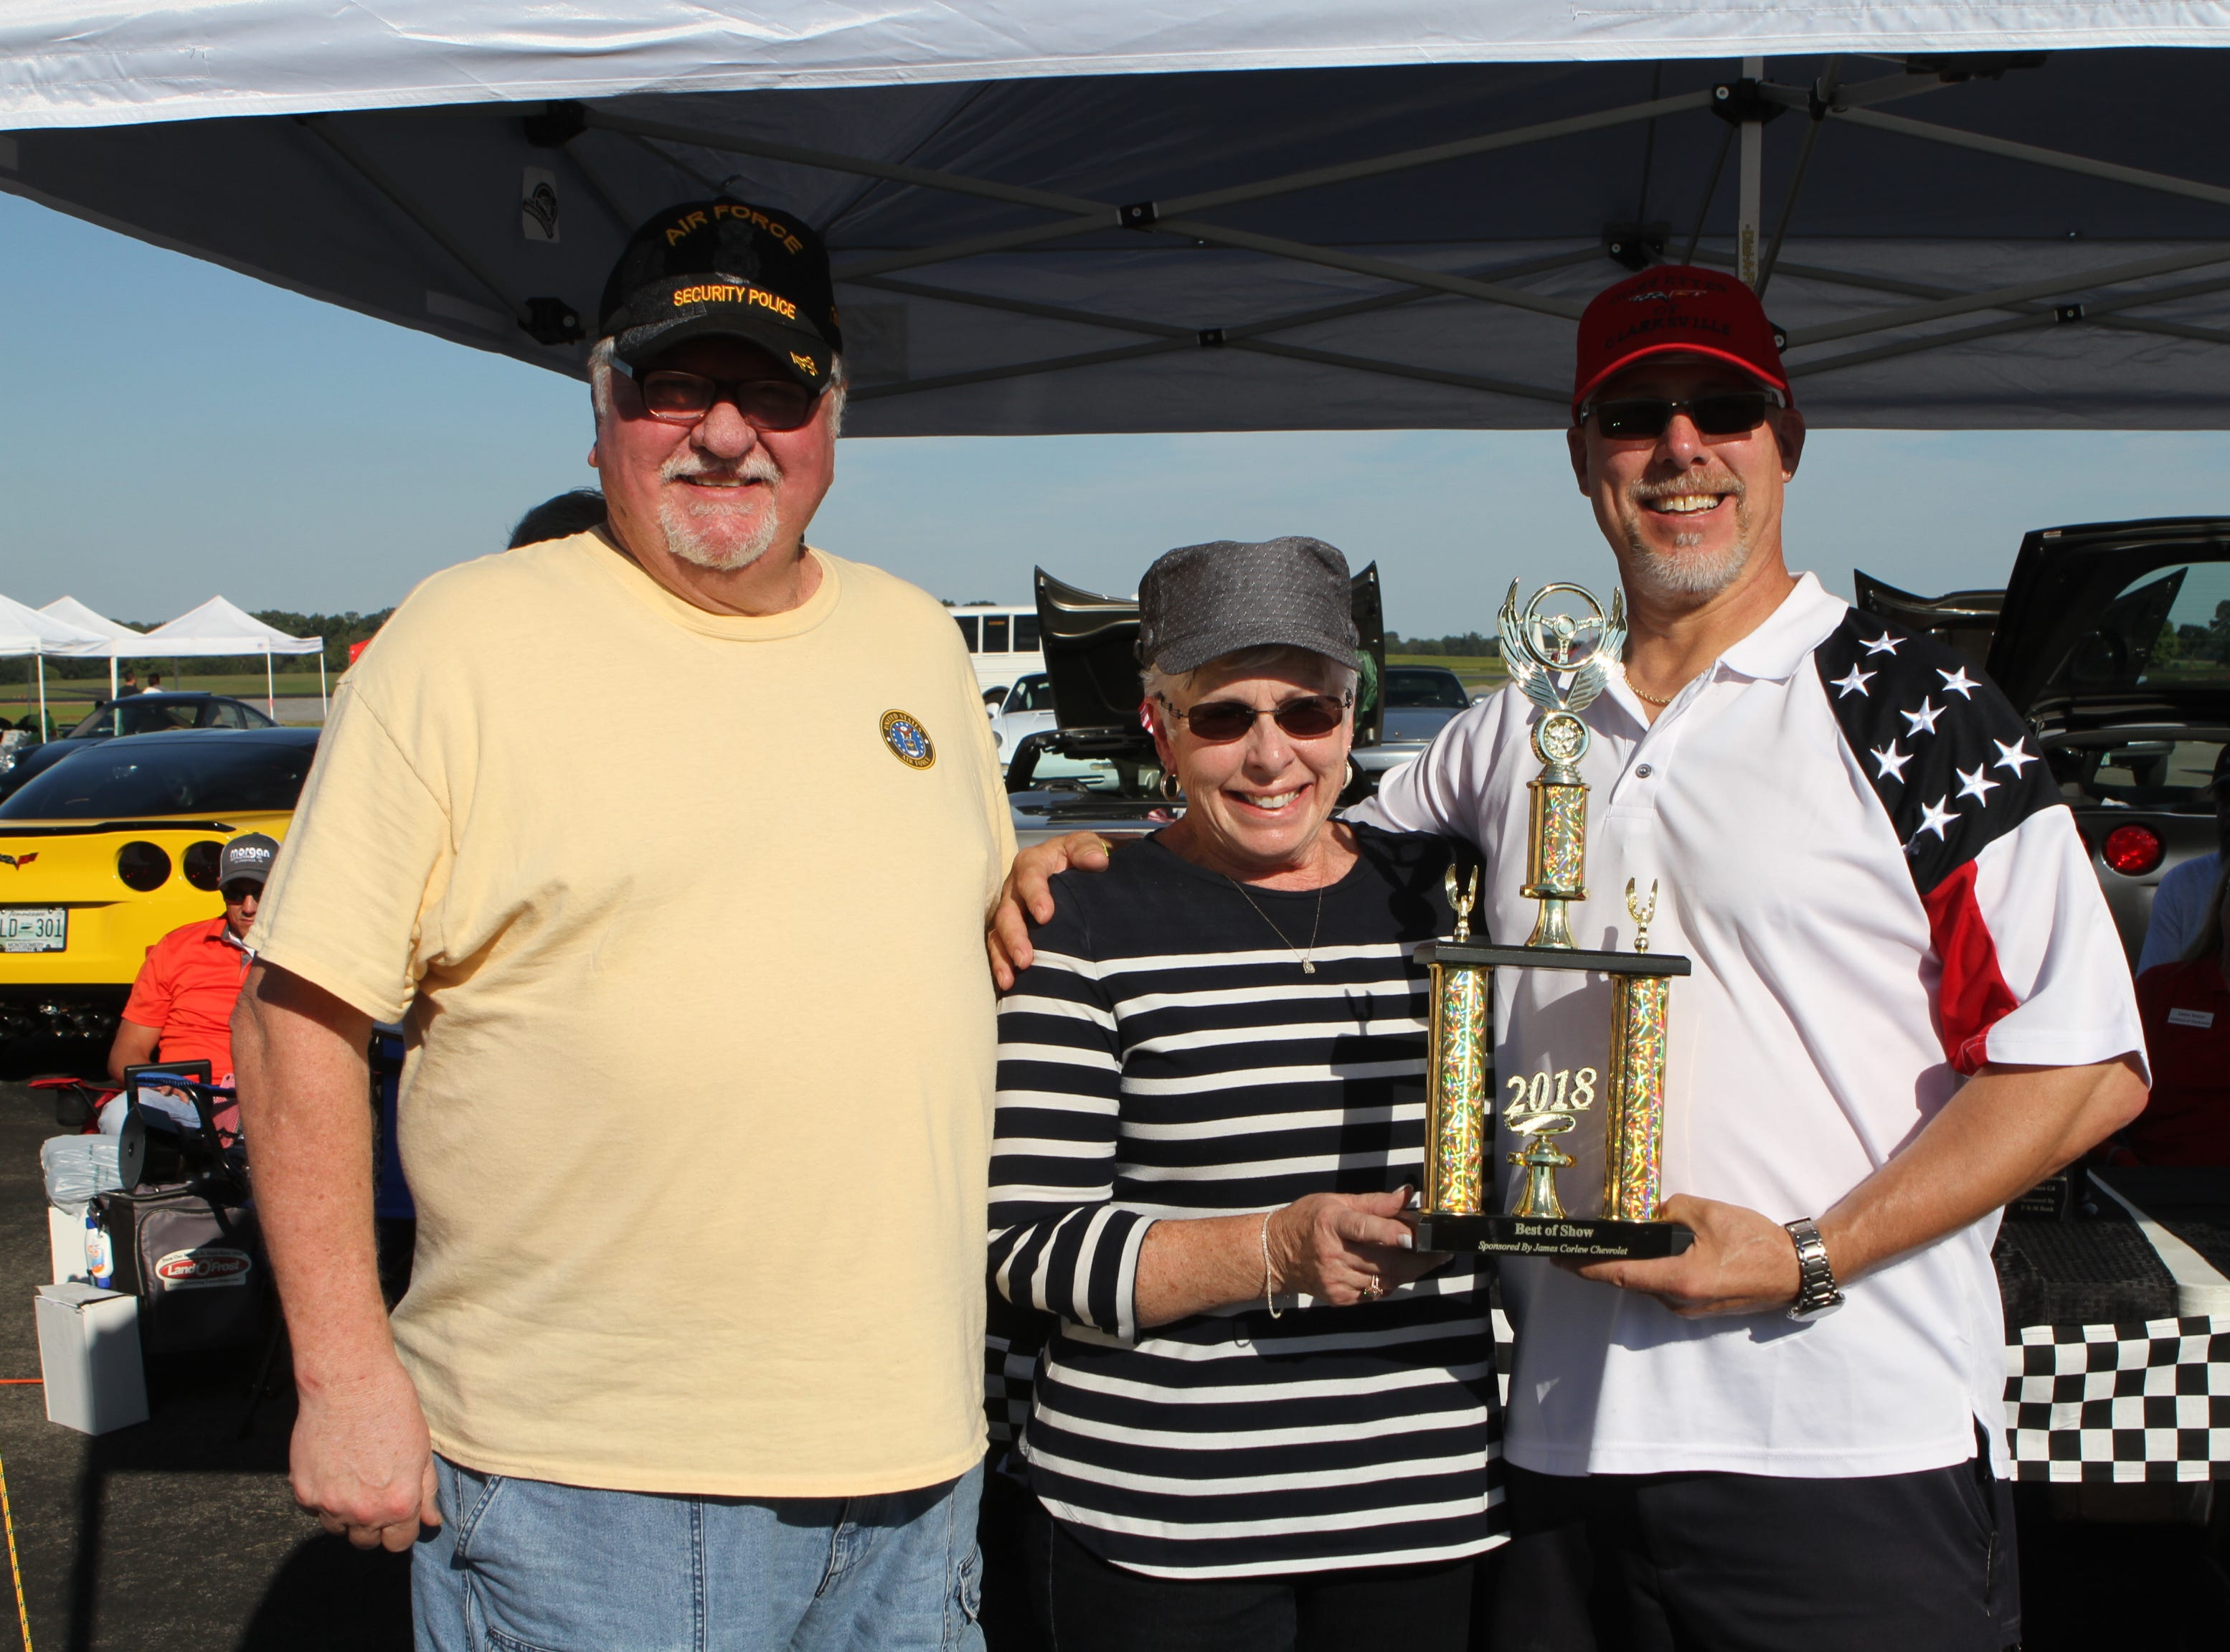 Richard and Pat Ball's 1973 Corvette earned the Best of Show trophy, presented by Michael Kunkel, at Wags and Wings, a family fun and Oktoberfest event to benefit the Humane Society of Clarksville-Montgomery County, Saturday, Sept. 29, 2018.